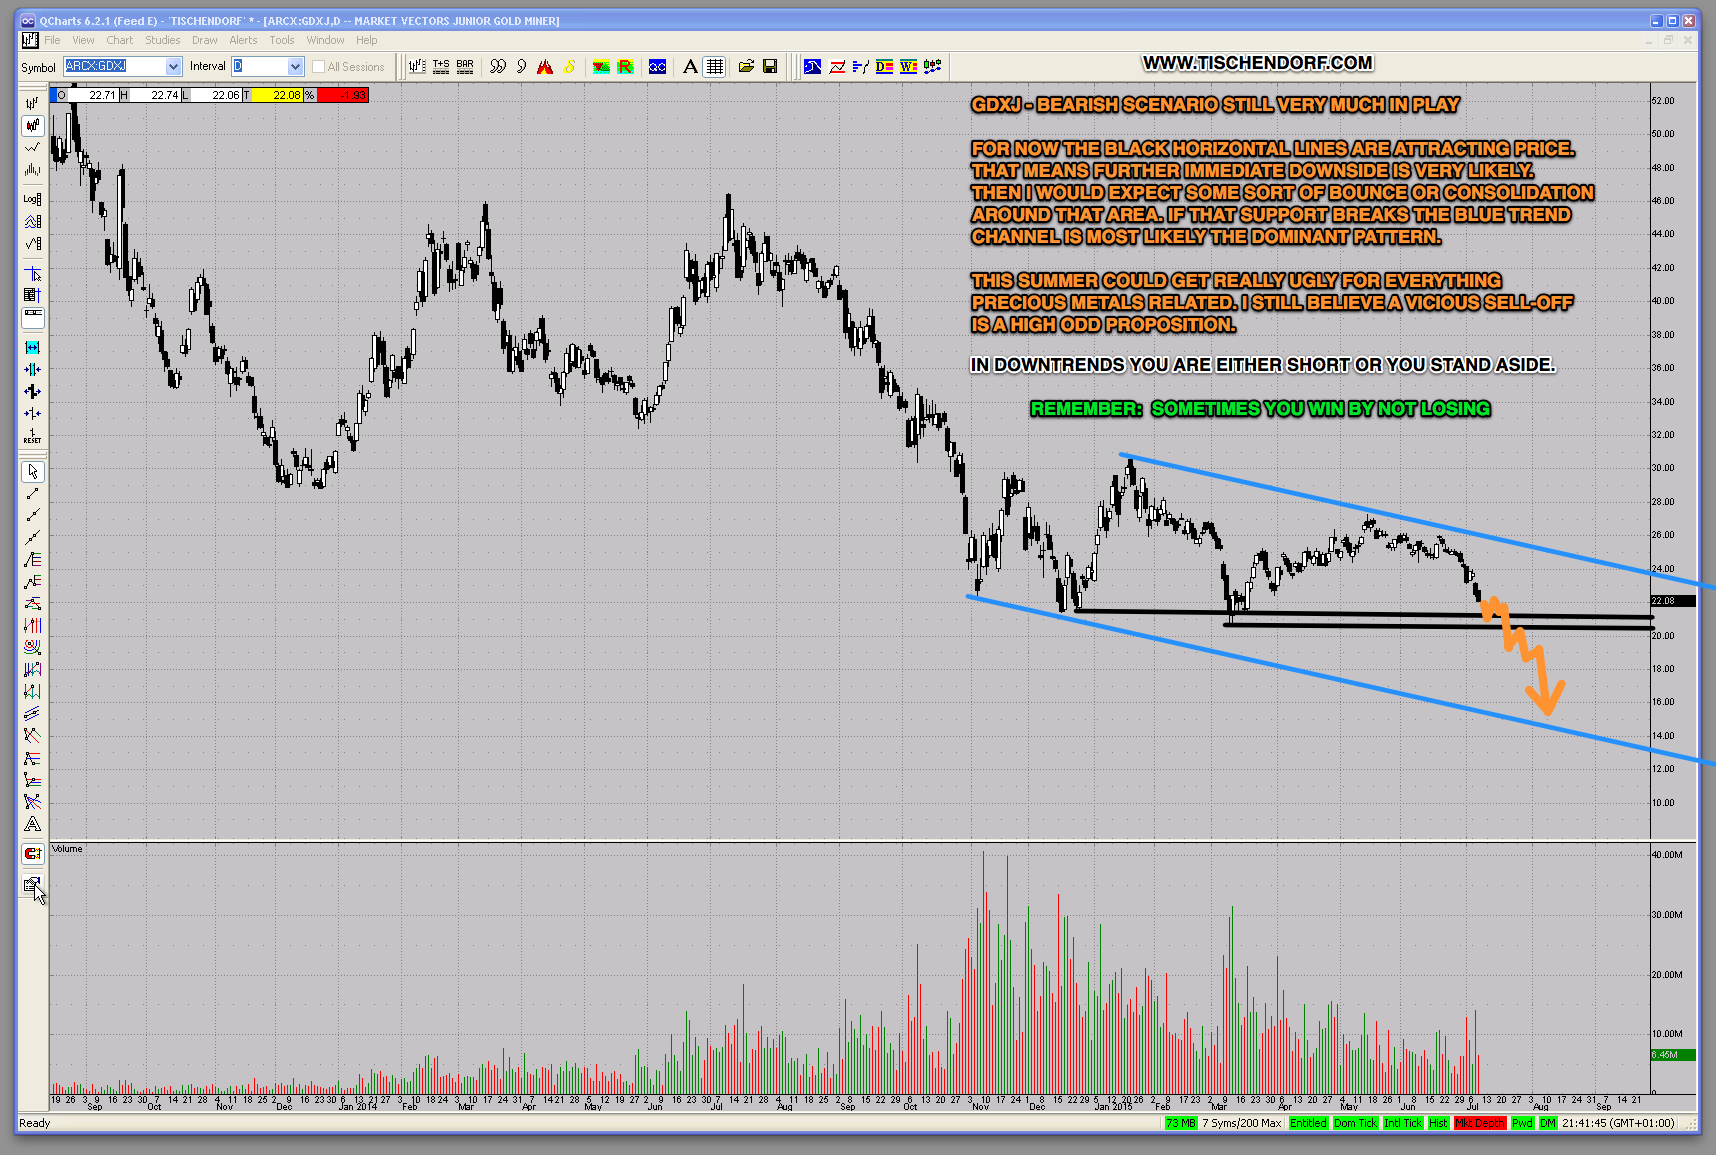 Gdxj gdx gold mining stocks downtrend high odds technical set up